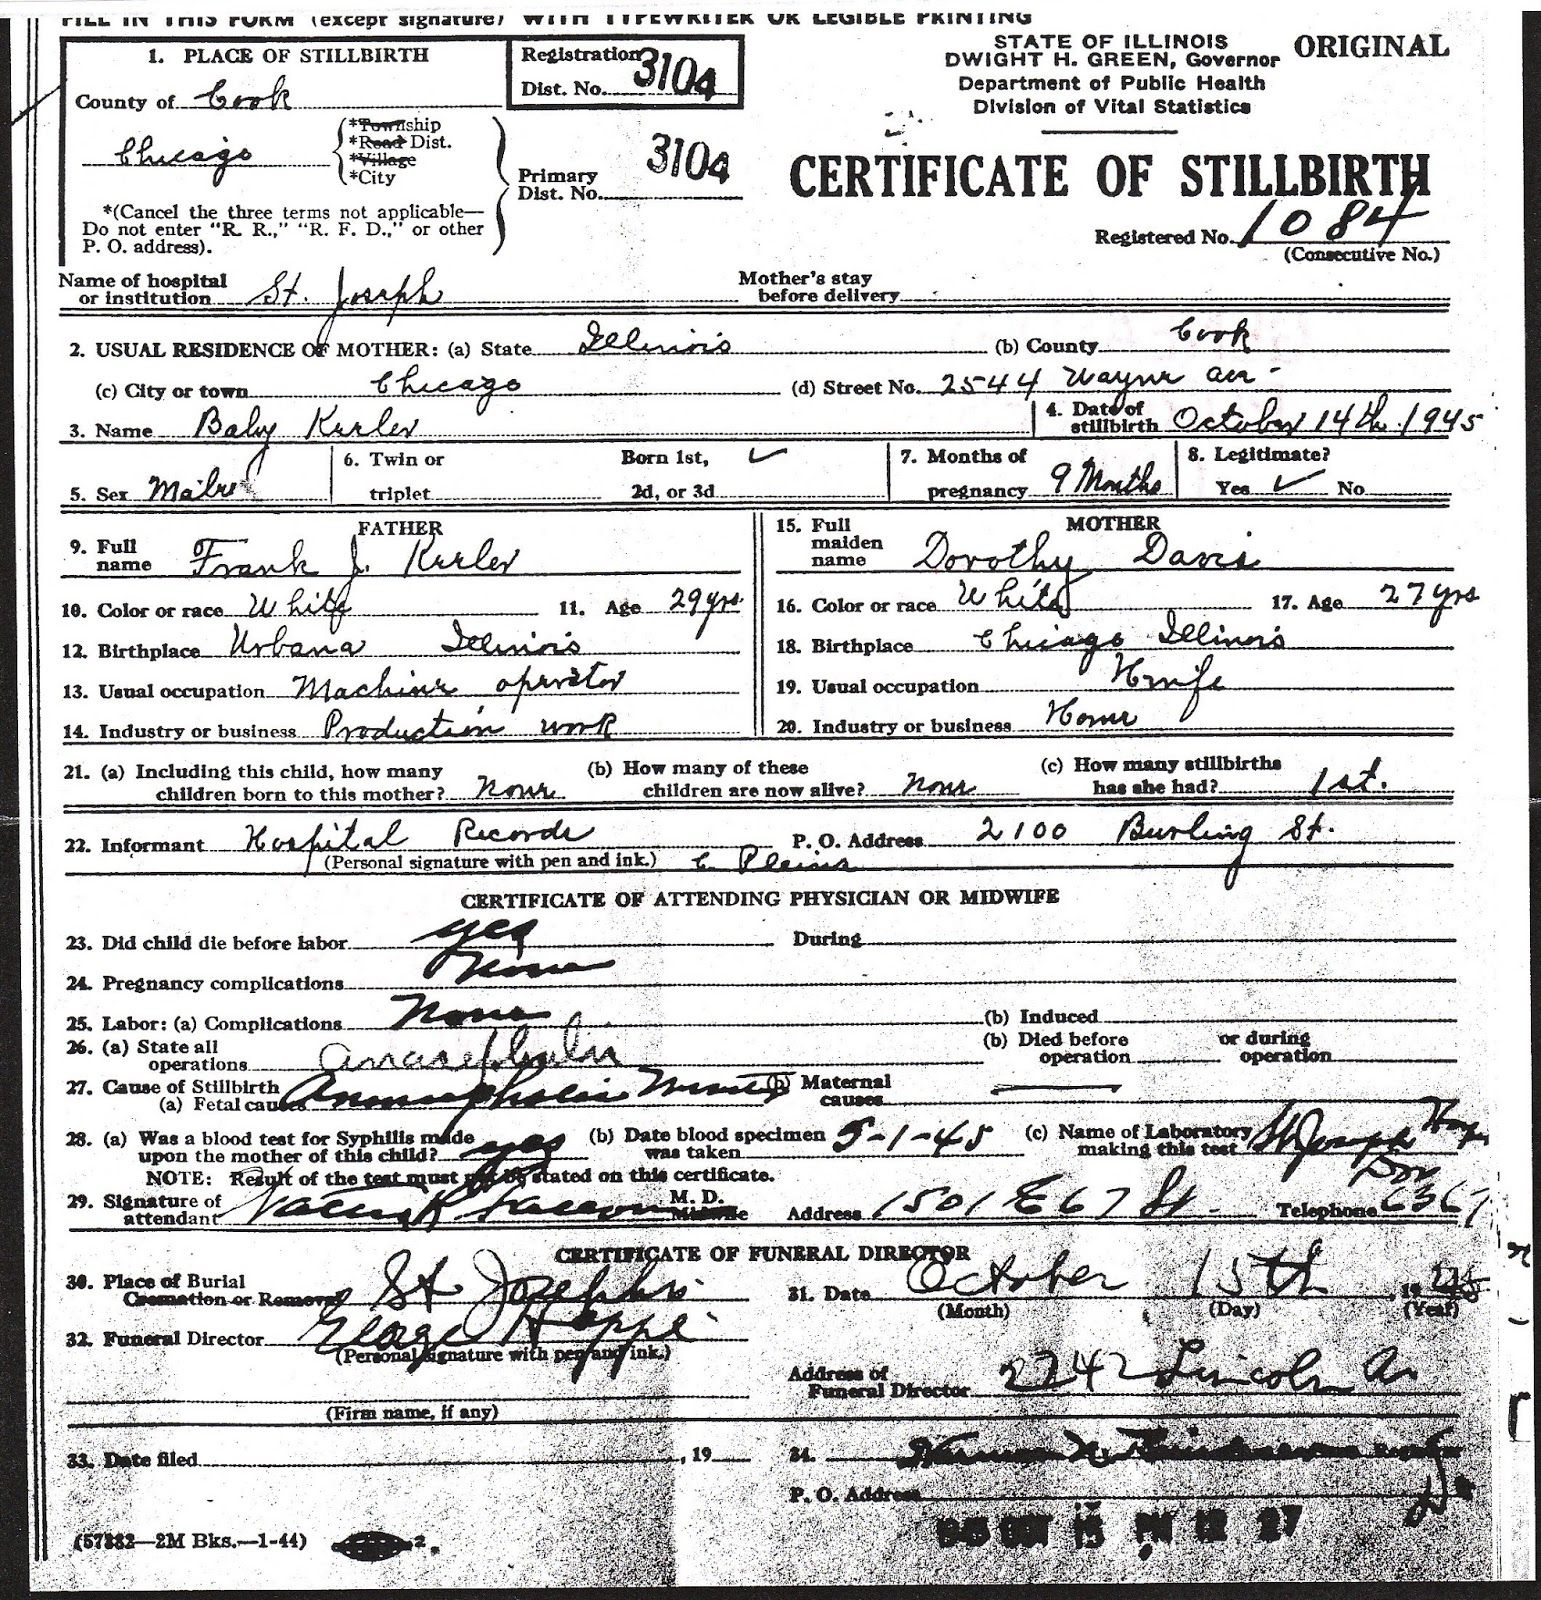 Your cousin caron january 2016 mother dorothy davis 27 years old born in chicago illinois housewife marriage certificates aiddatafo Choice Image